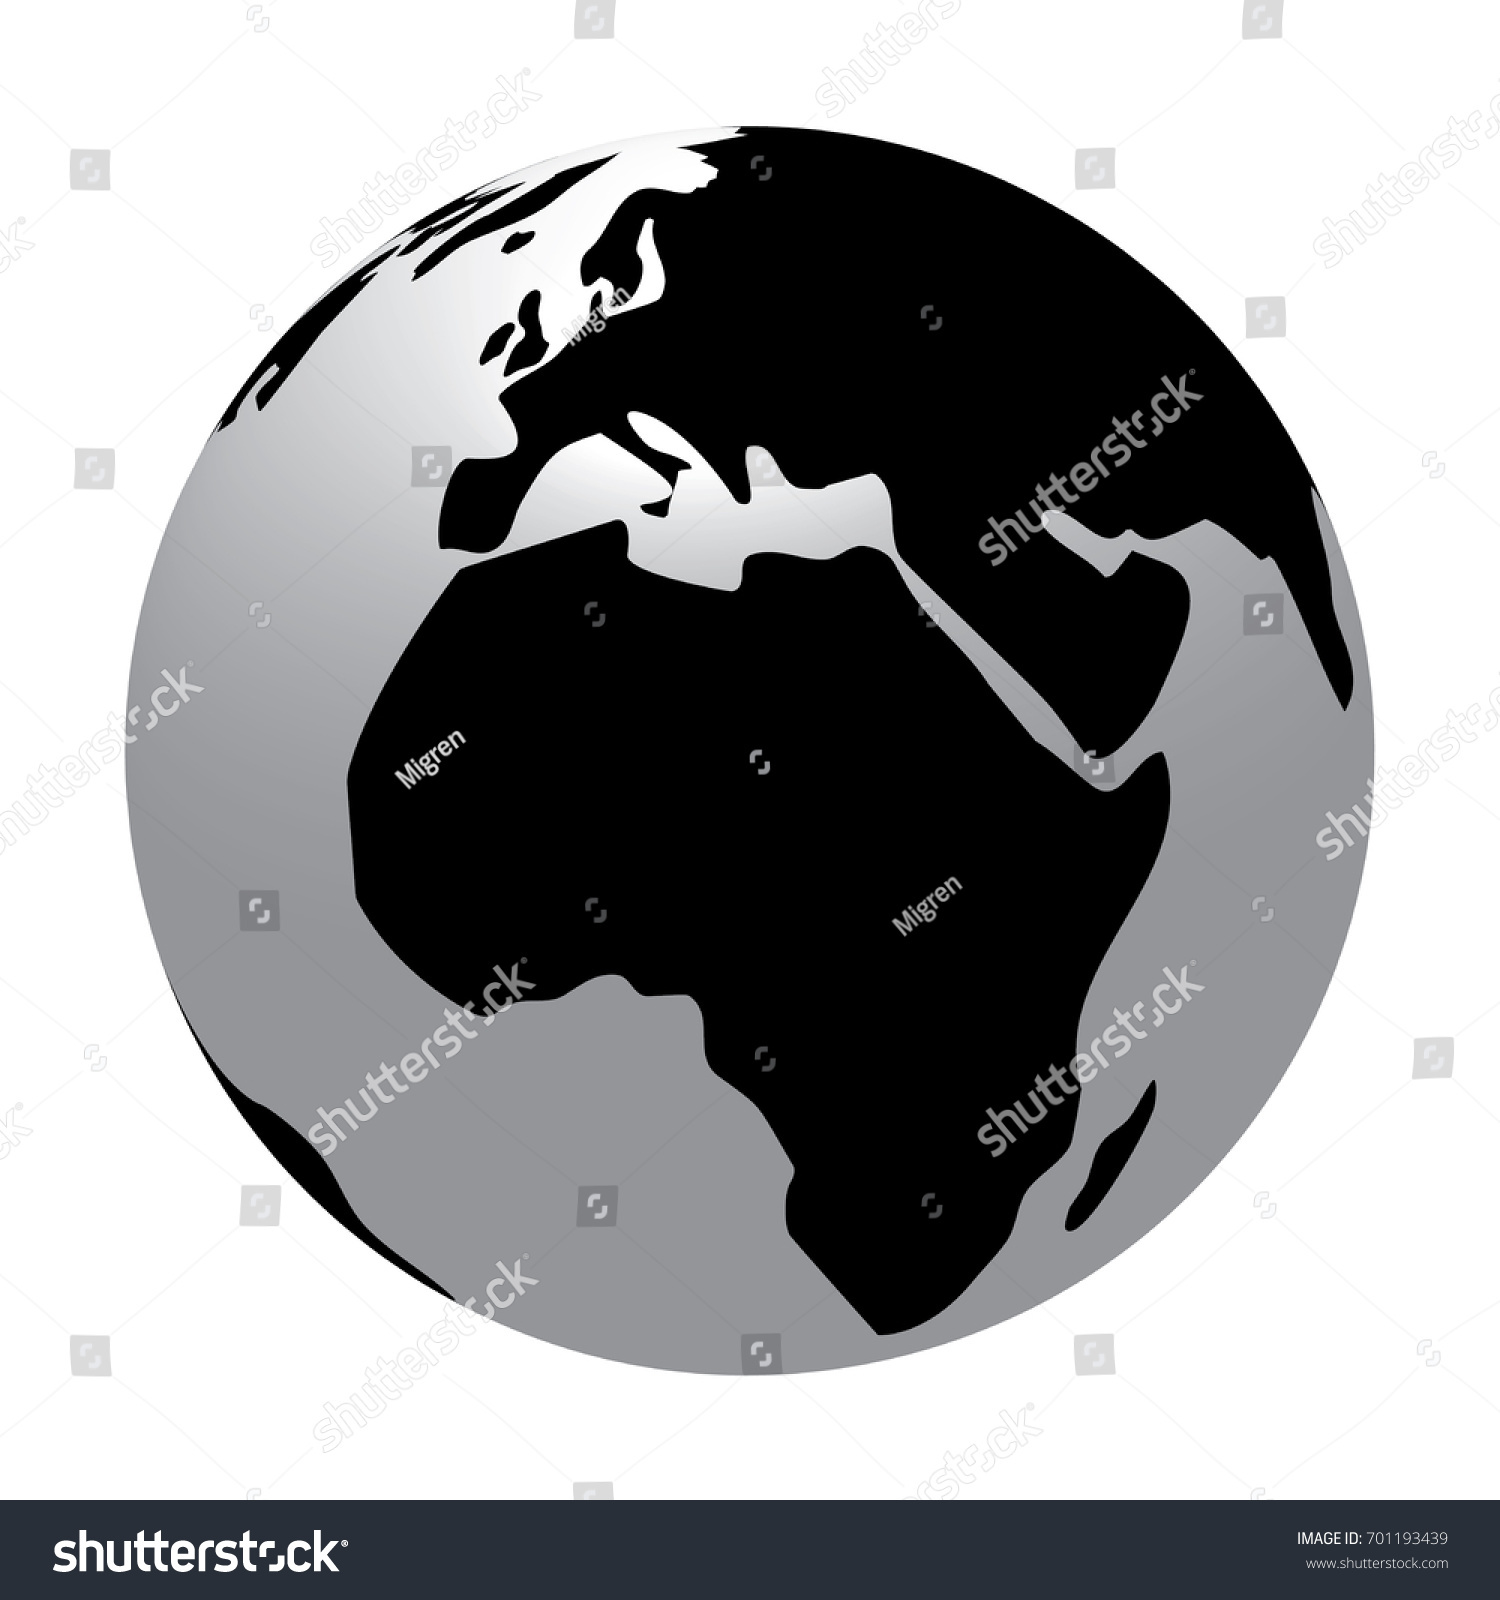 Three dimensional world map simple globe stock illustration three dimensional world map simple globe with only black white and grey colors gumiabroncs Choice Image